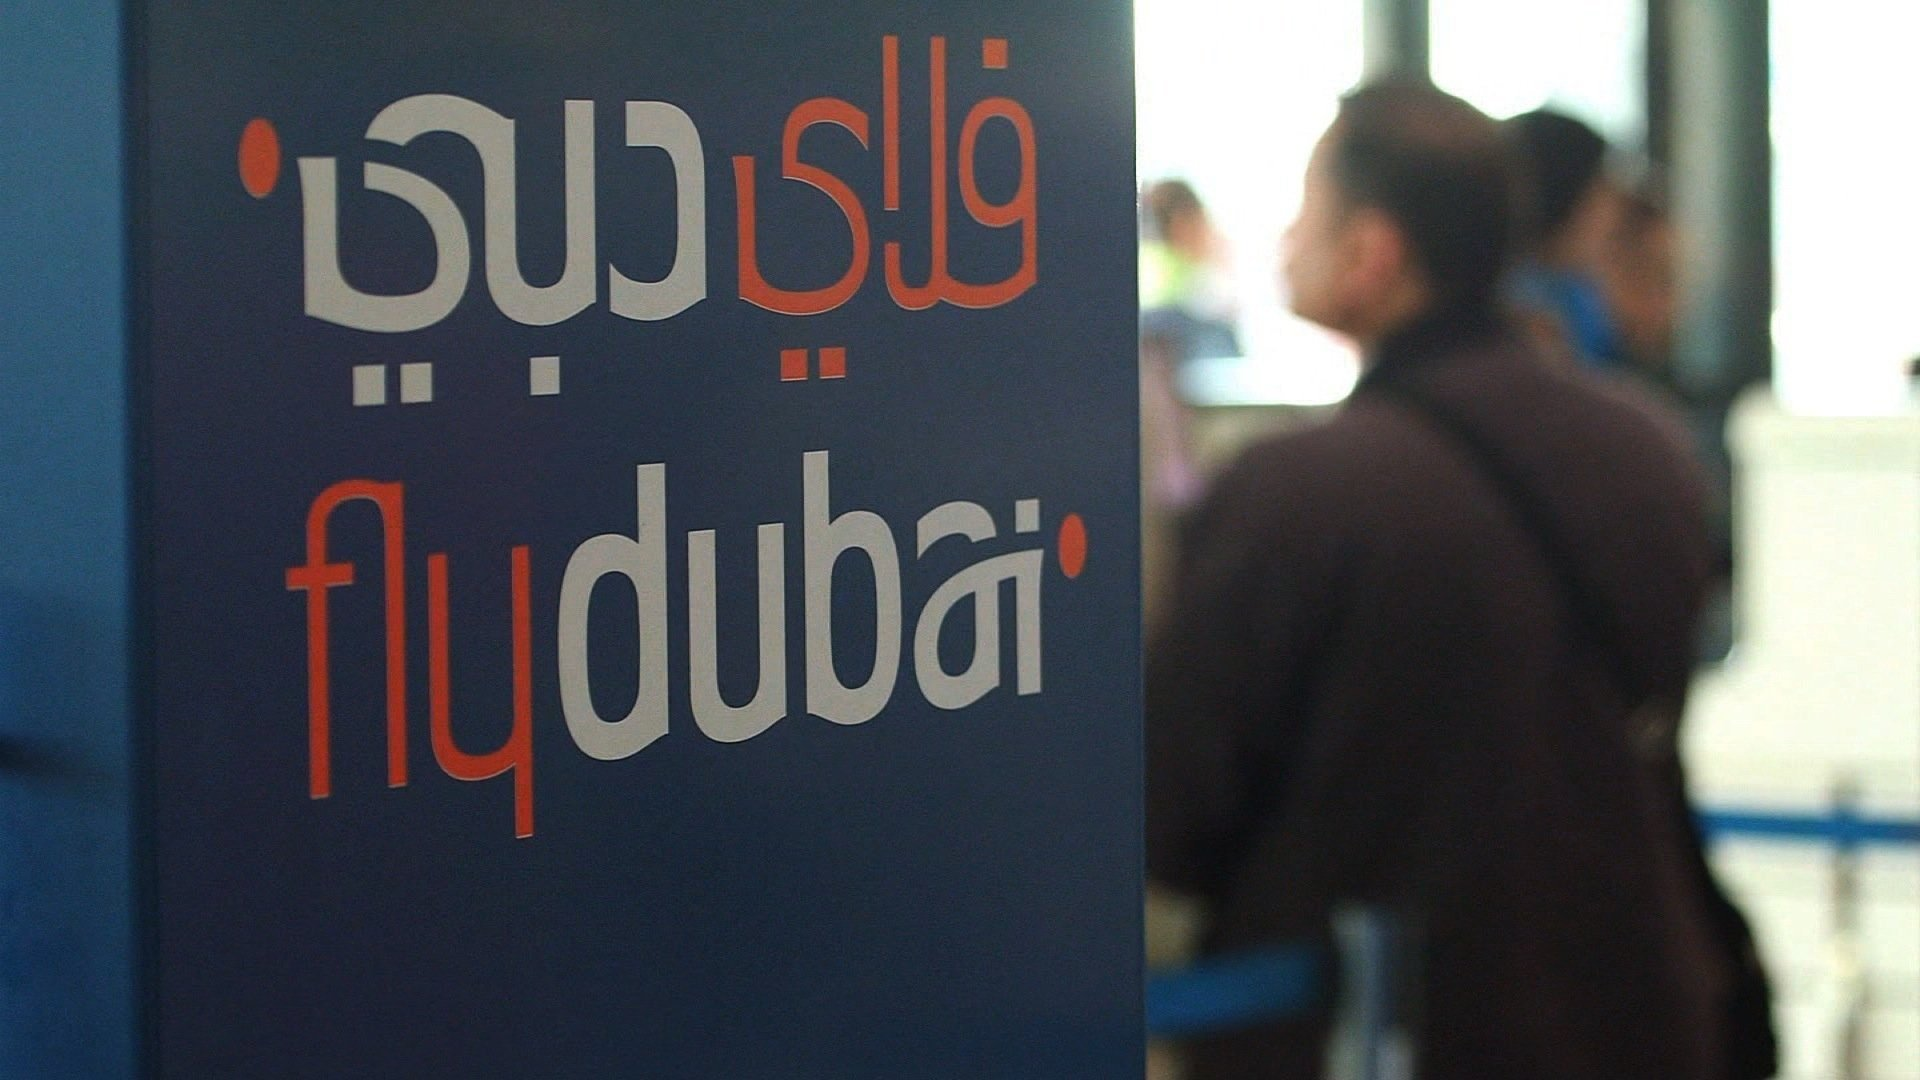 """The next time you book an Emirates flight, you may end up on low-cost rival FlyDubai. The two Dubai state-owned airlines have announced an """"extensive partnership agreement."""" CNN images showing Terminal 2 at Dubai International Airport, where flydubai..."""